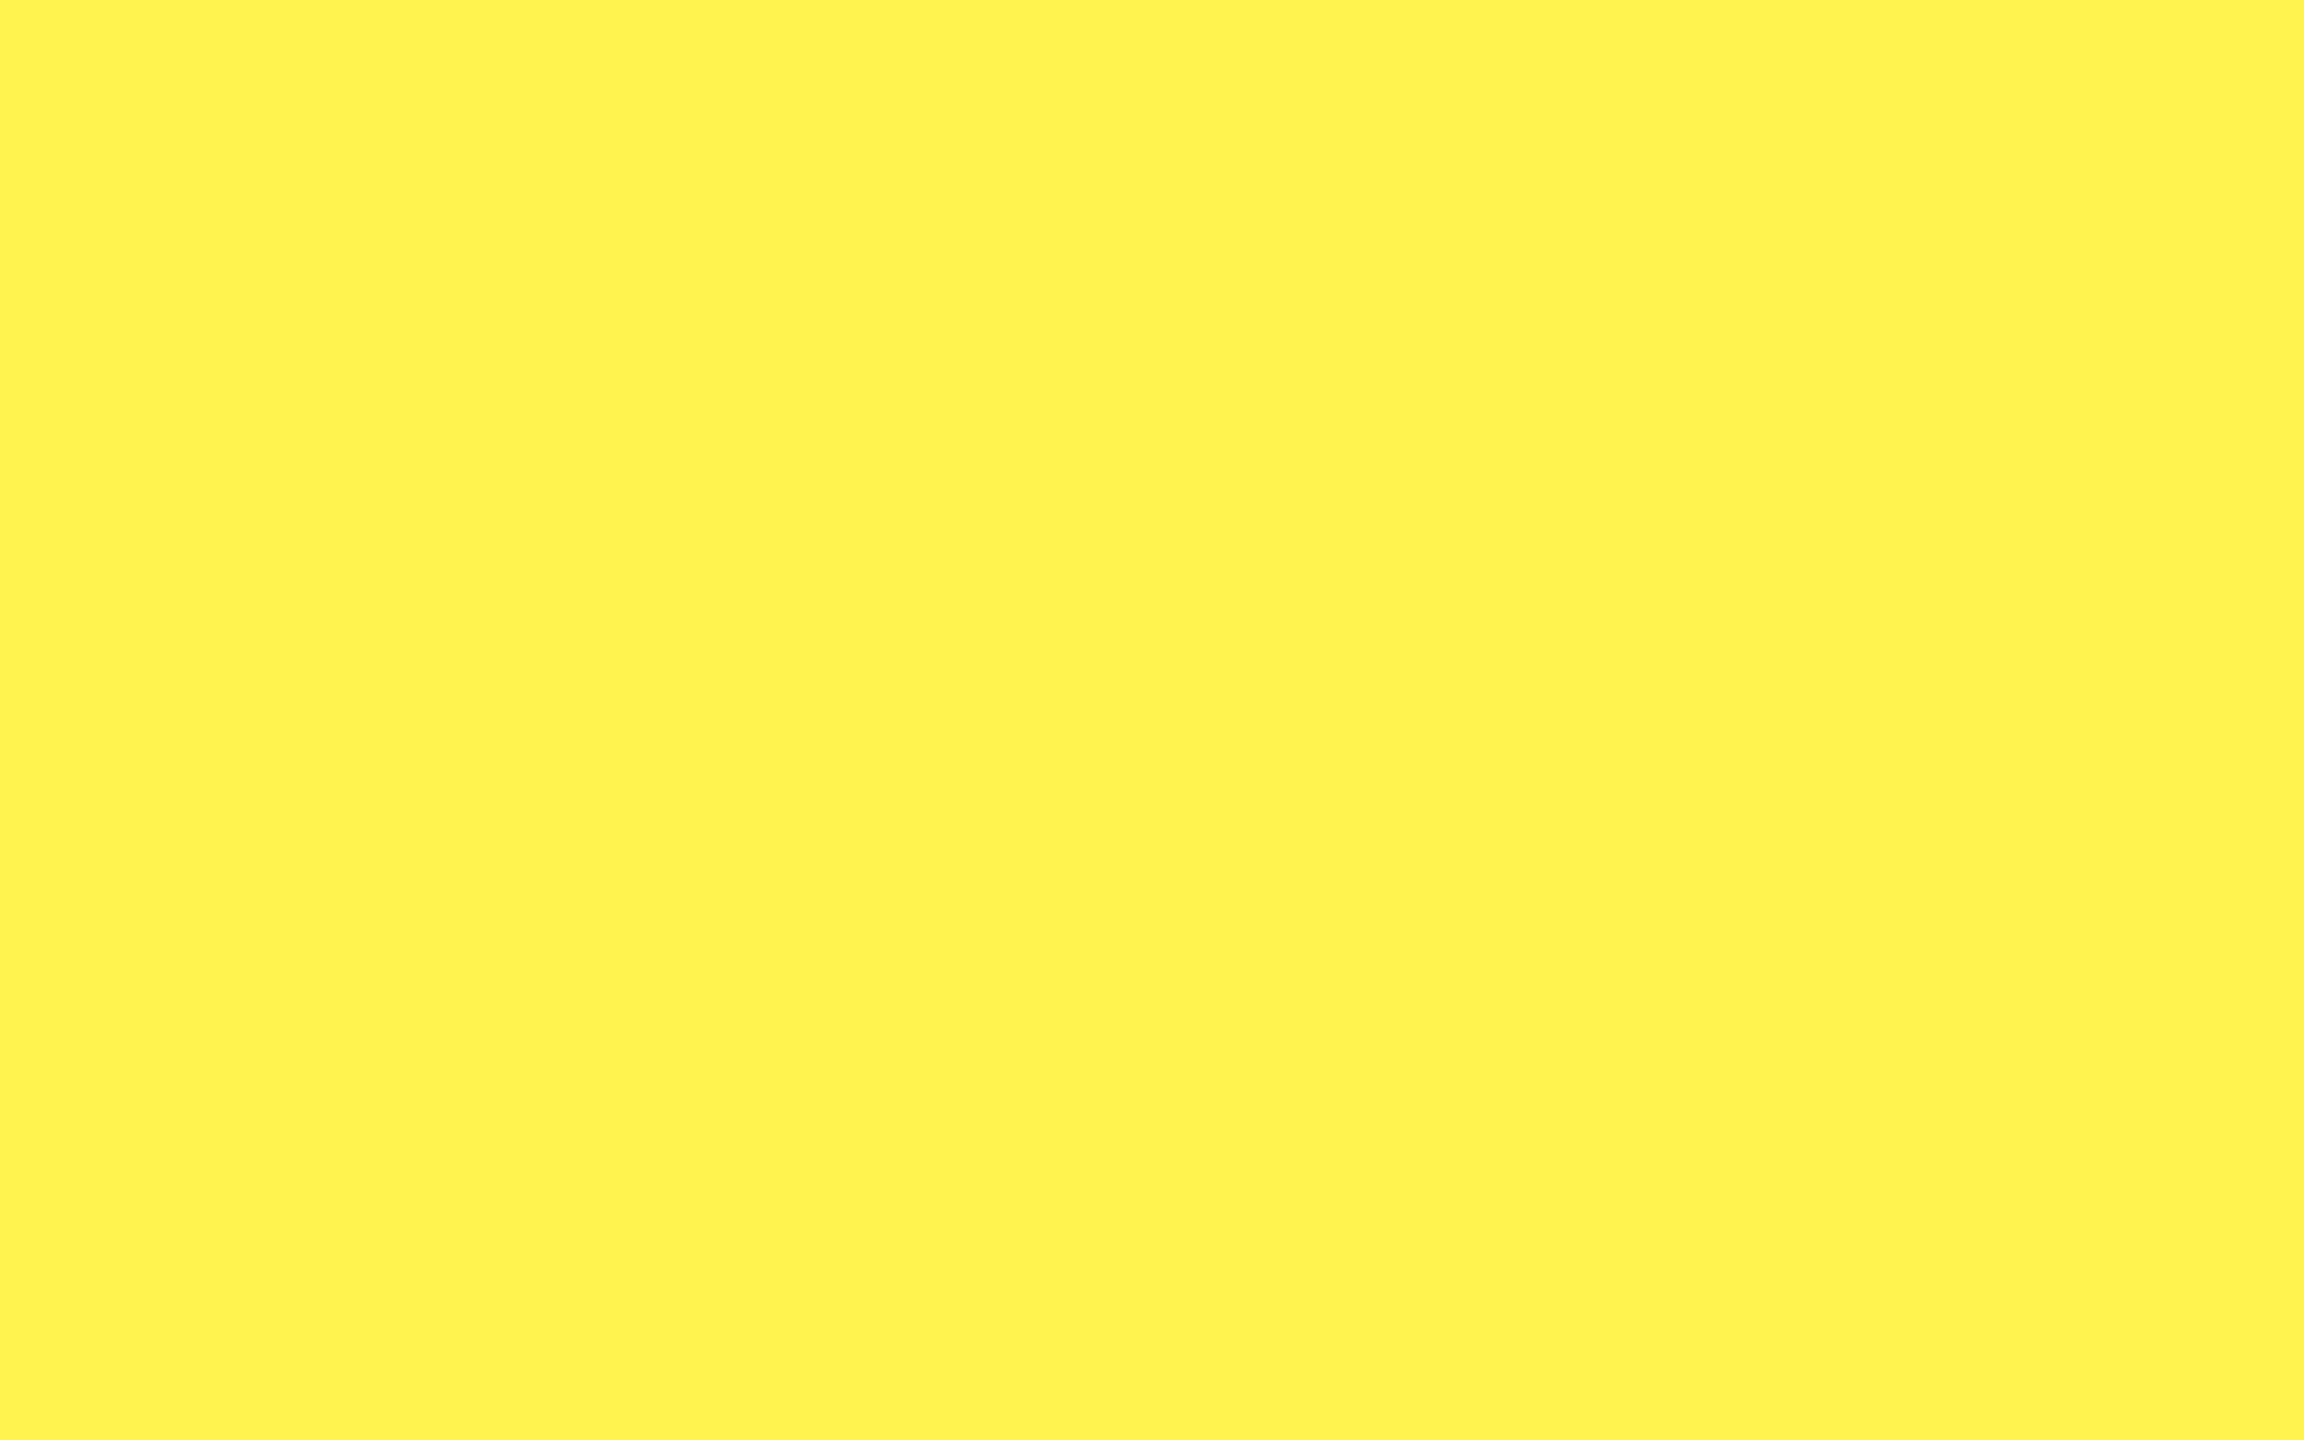 2304x1440 Lemon Yellow Solid Color Background